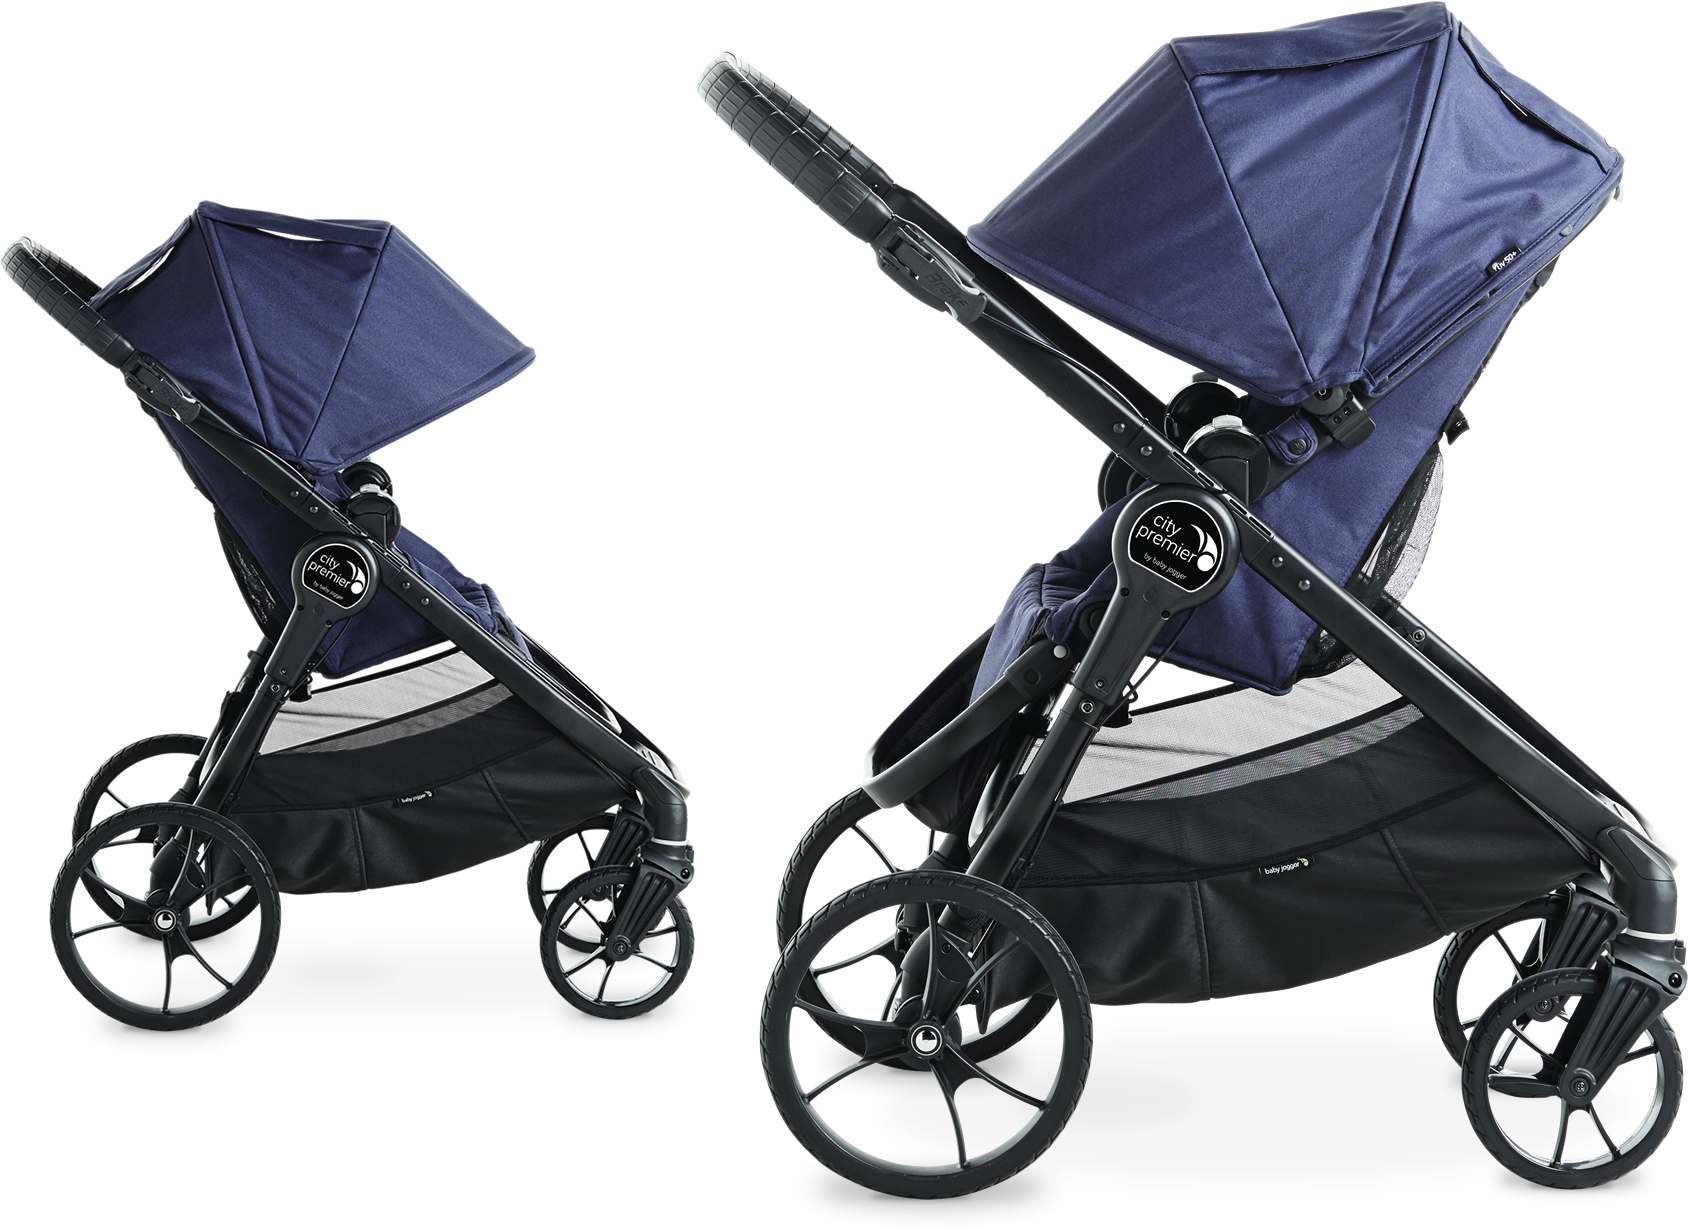 Configurations With 5 different riding options City Premier makes it easy to explore the world to her The reversible seat can be parent facing so mom